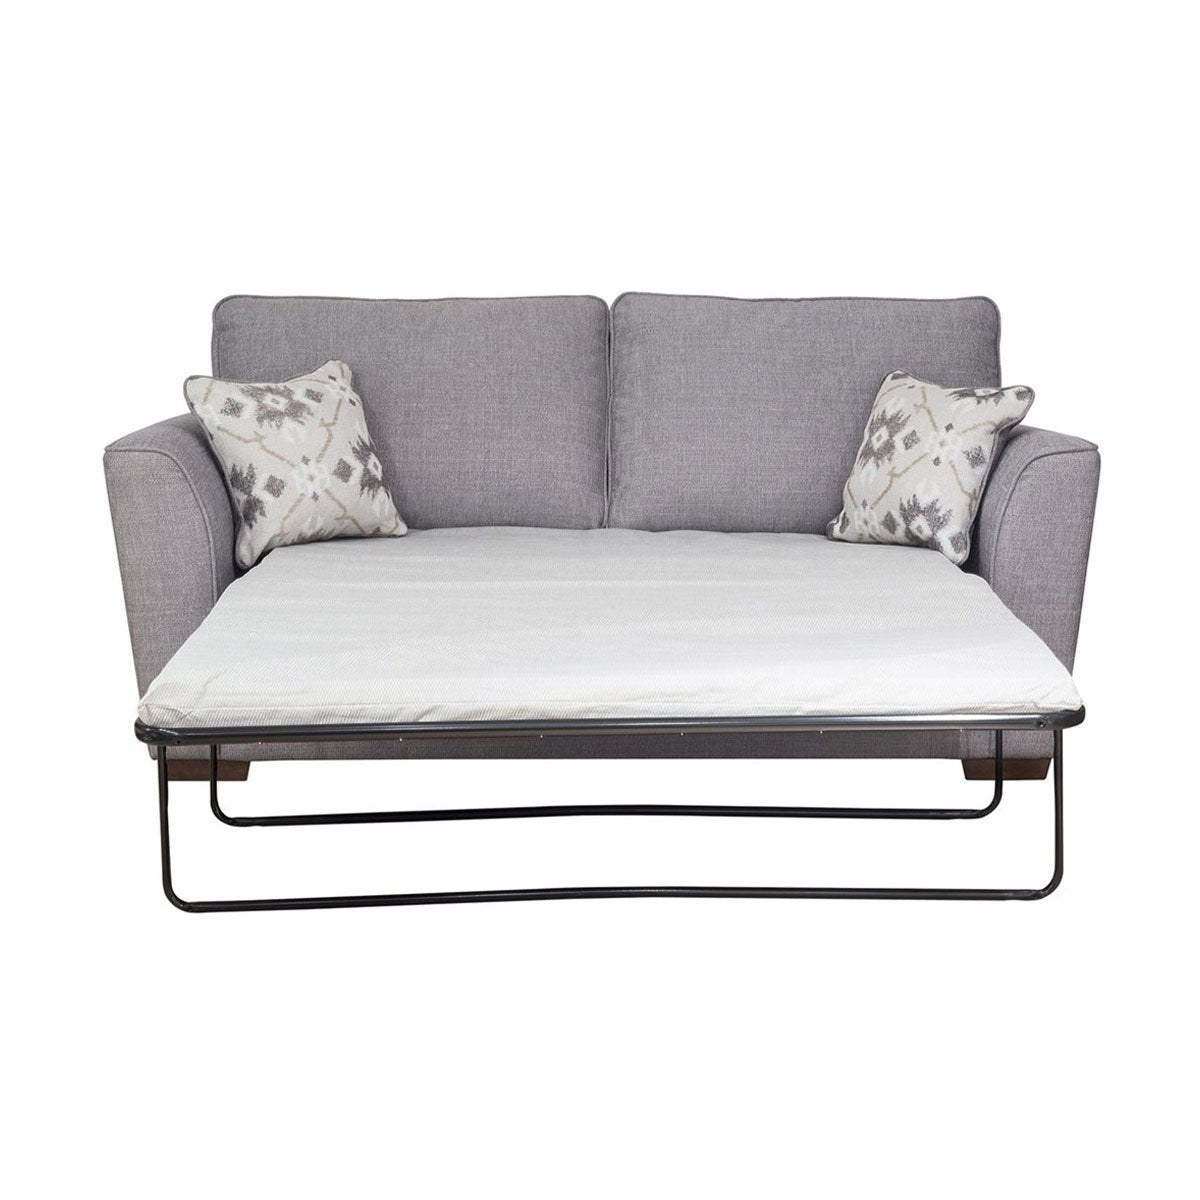 Capri 2 Seater Sofa Bed